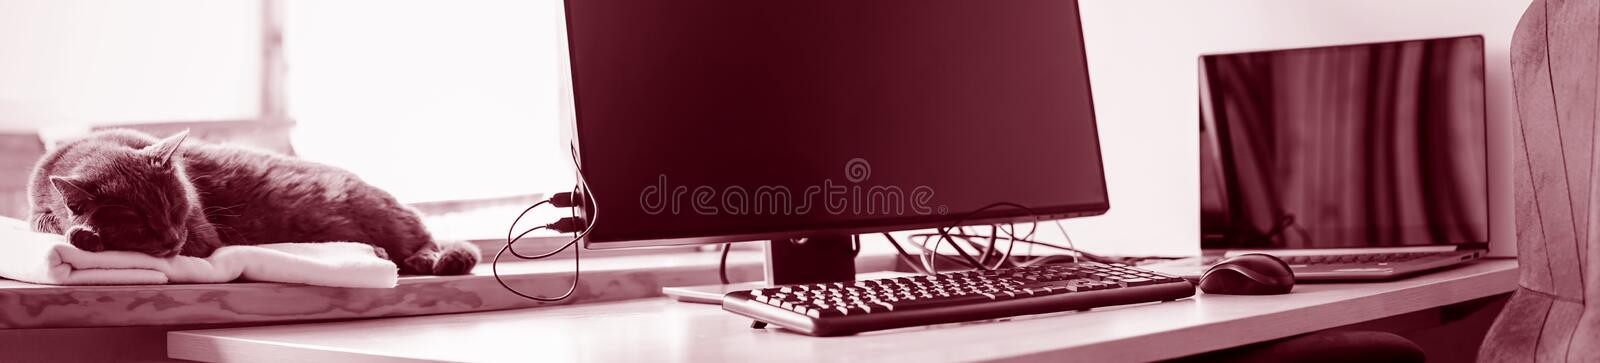 Working place with IT equipment at home is used as homebase office. Flexible hours and remote working concept, panorama royalty free stock images